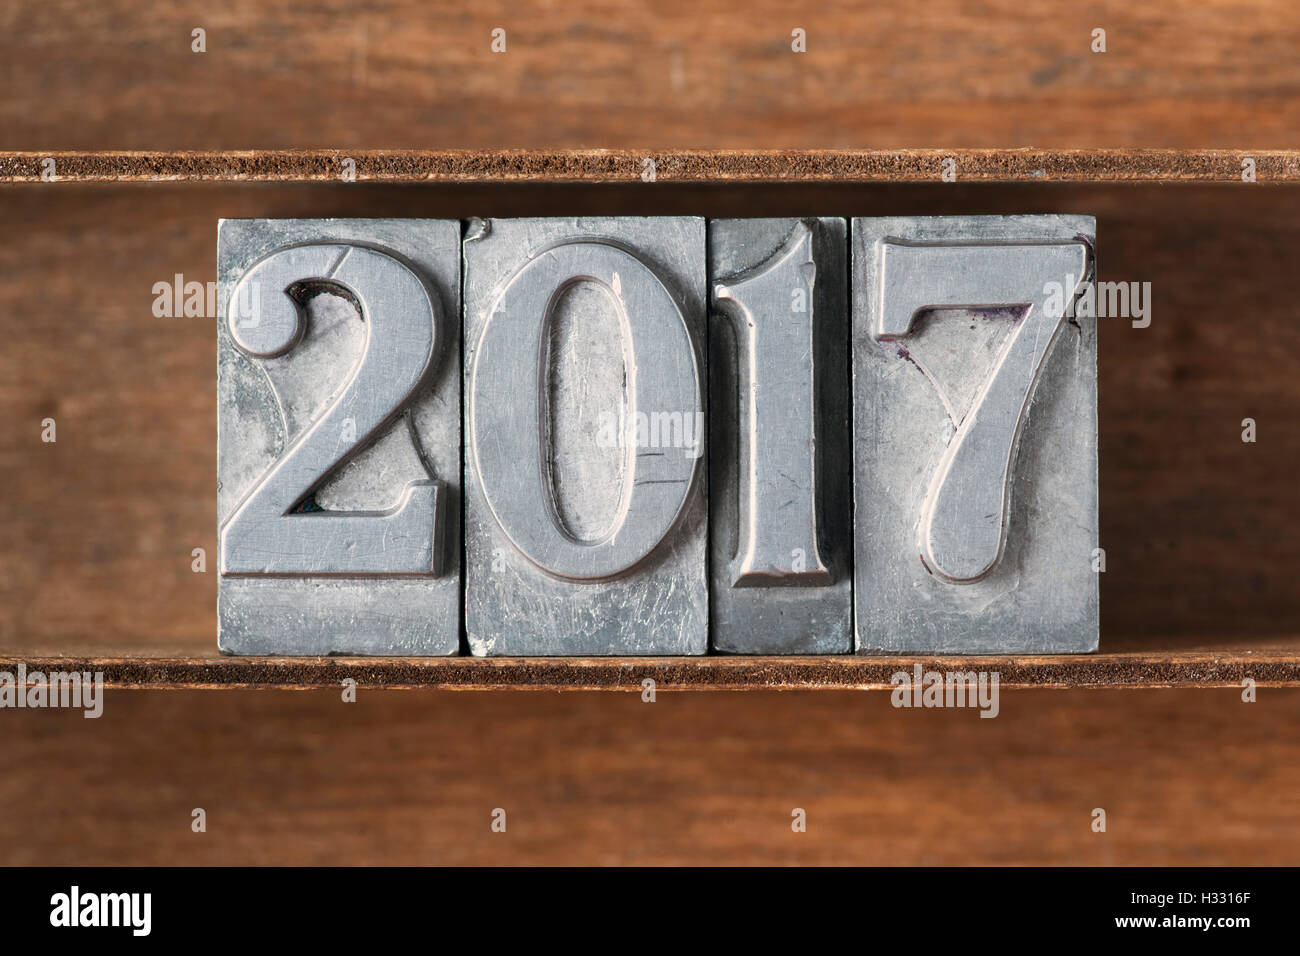 2017 number made from metallic letterpress type on wooden tray